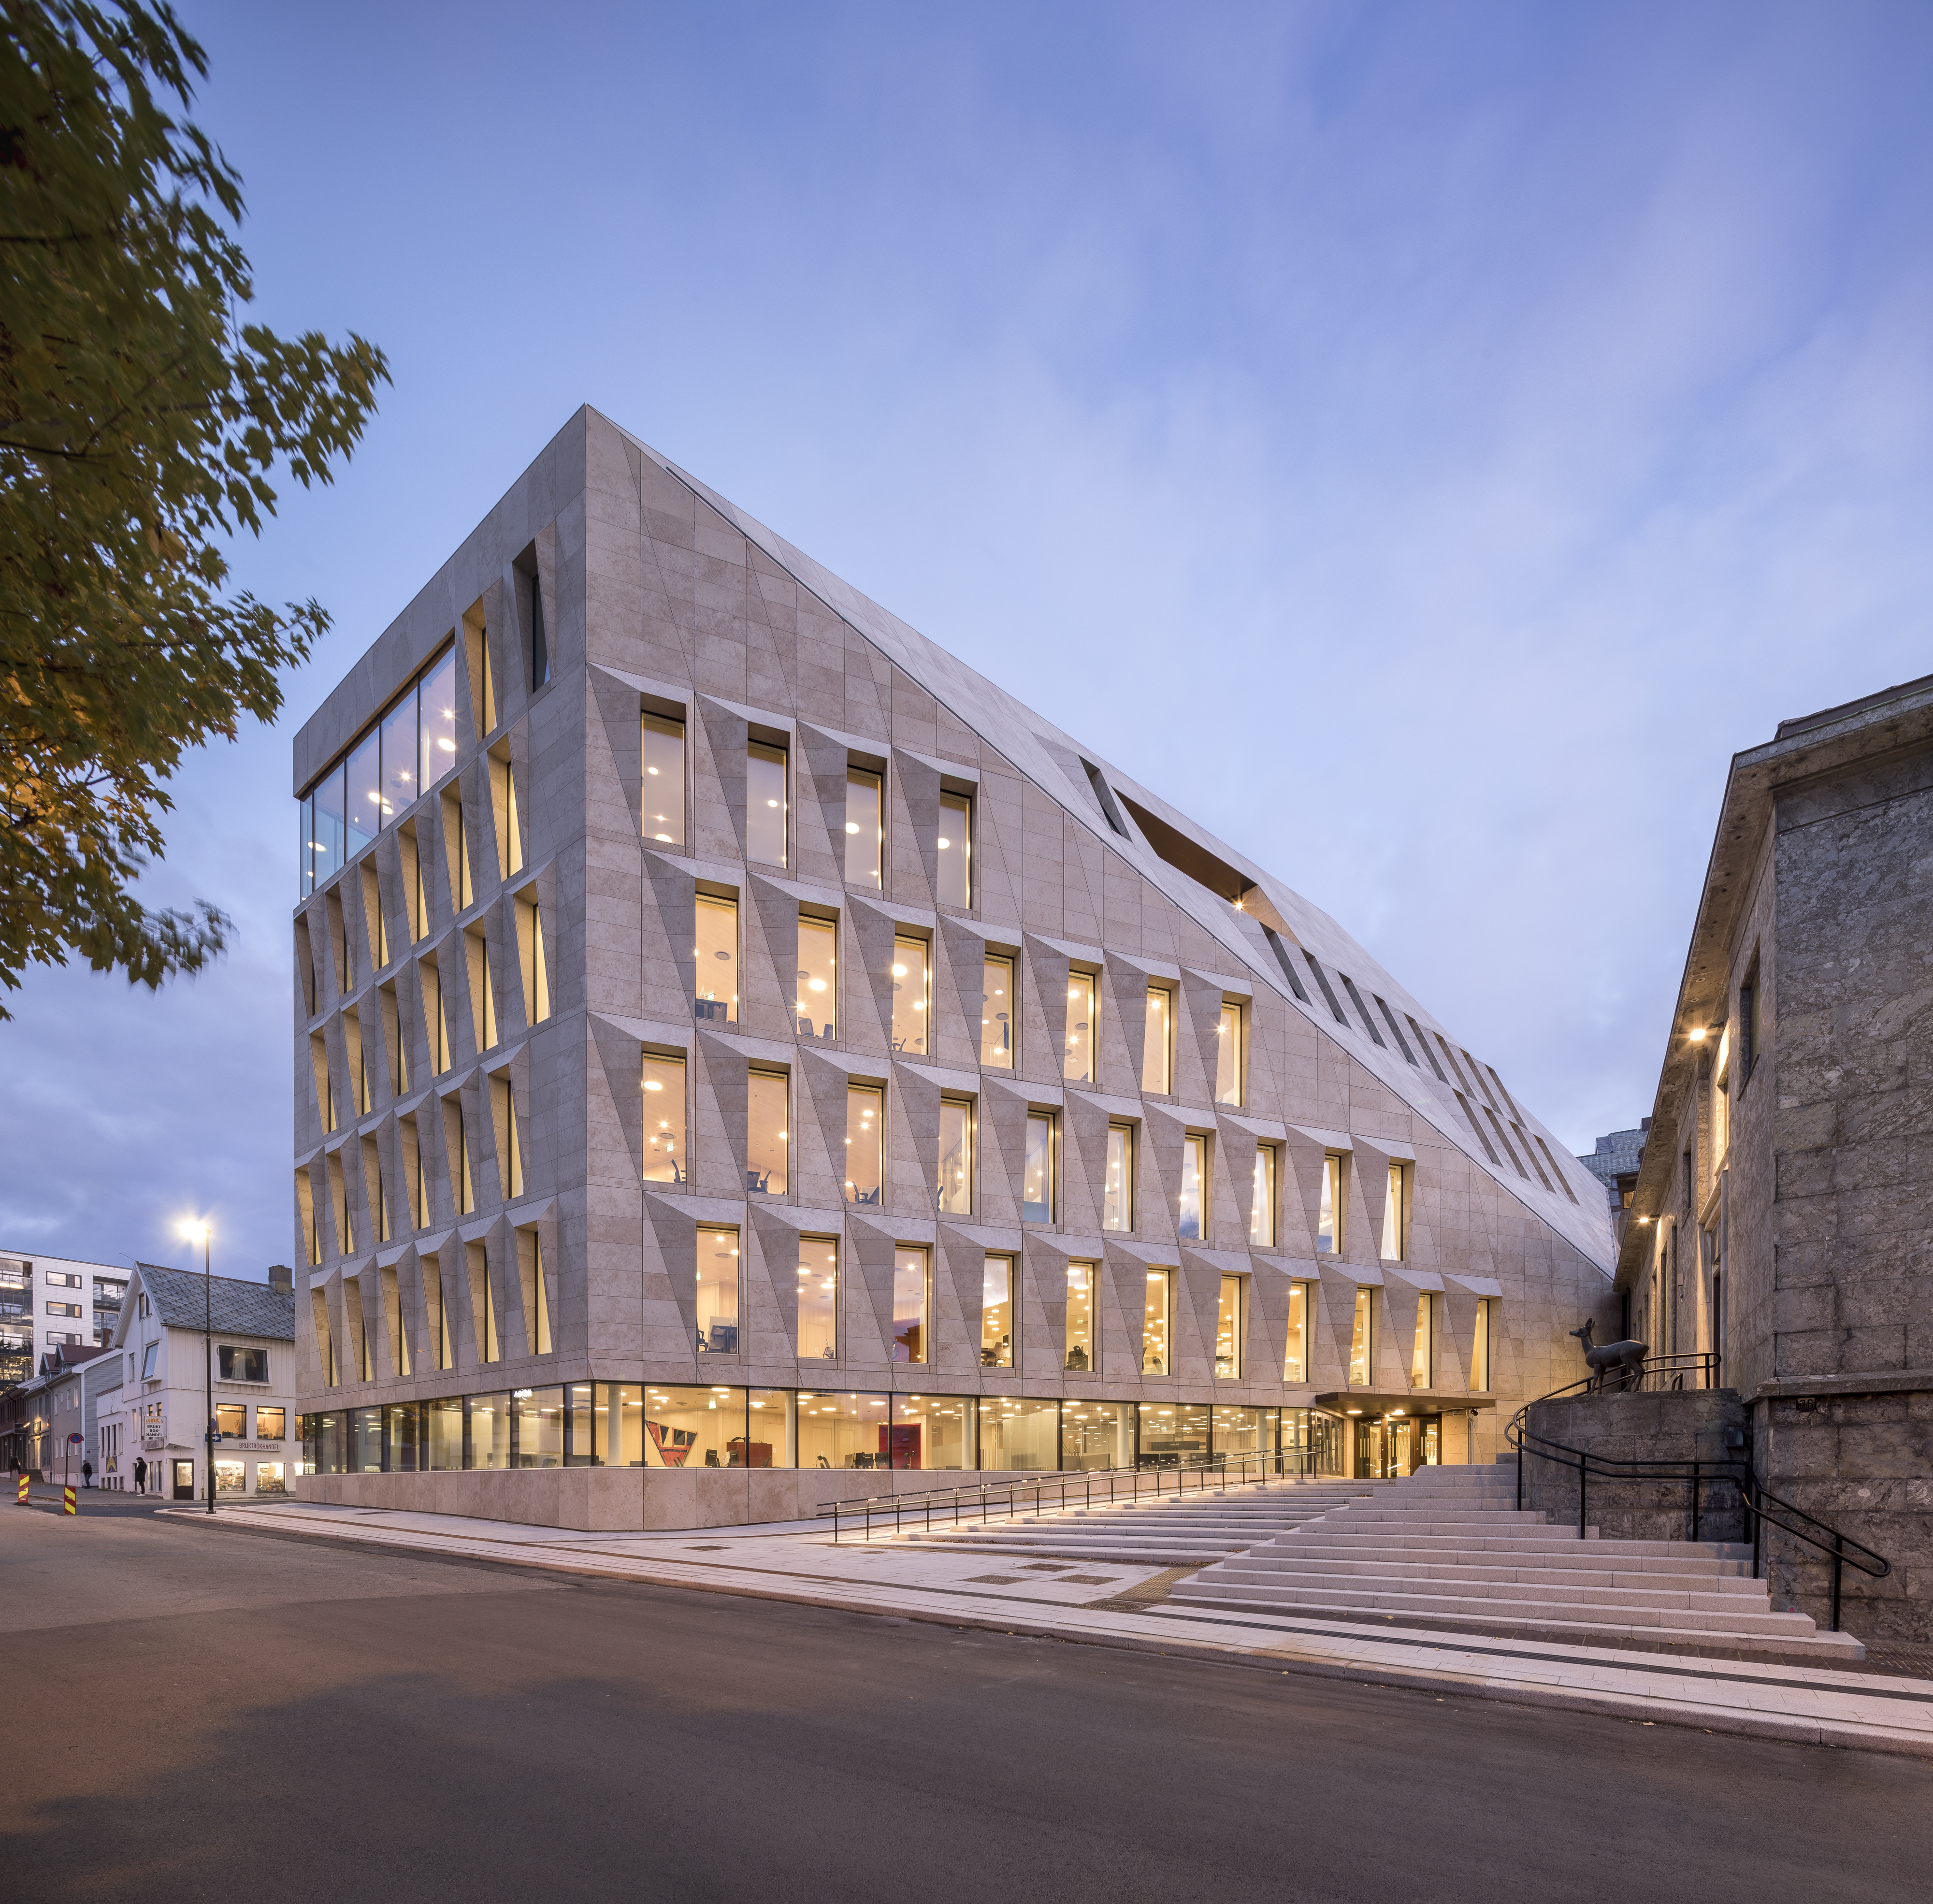 New townhall in Bodø